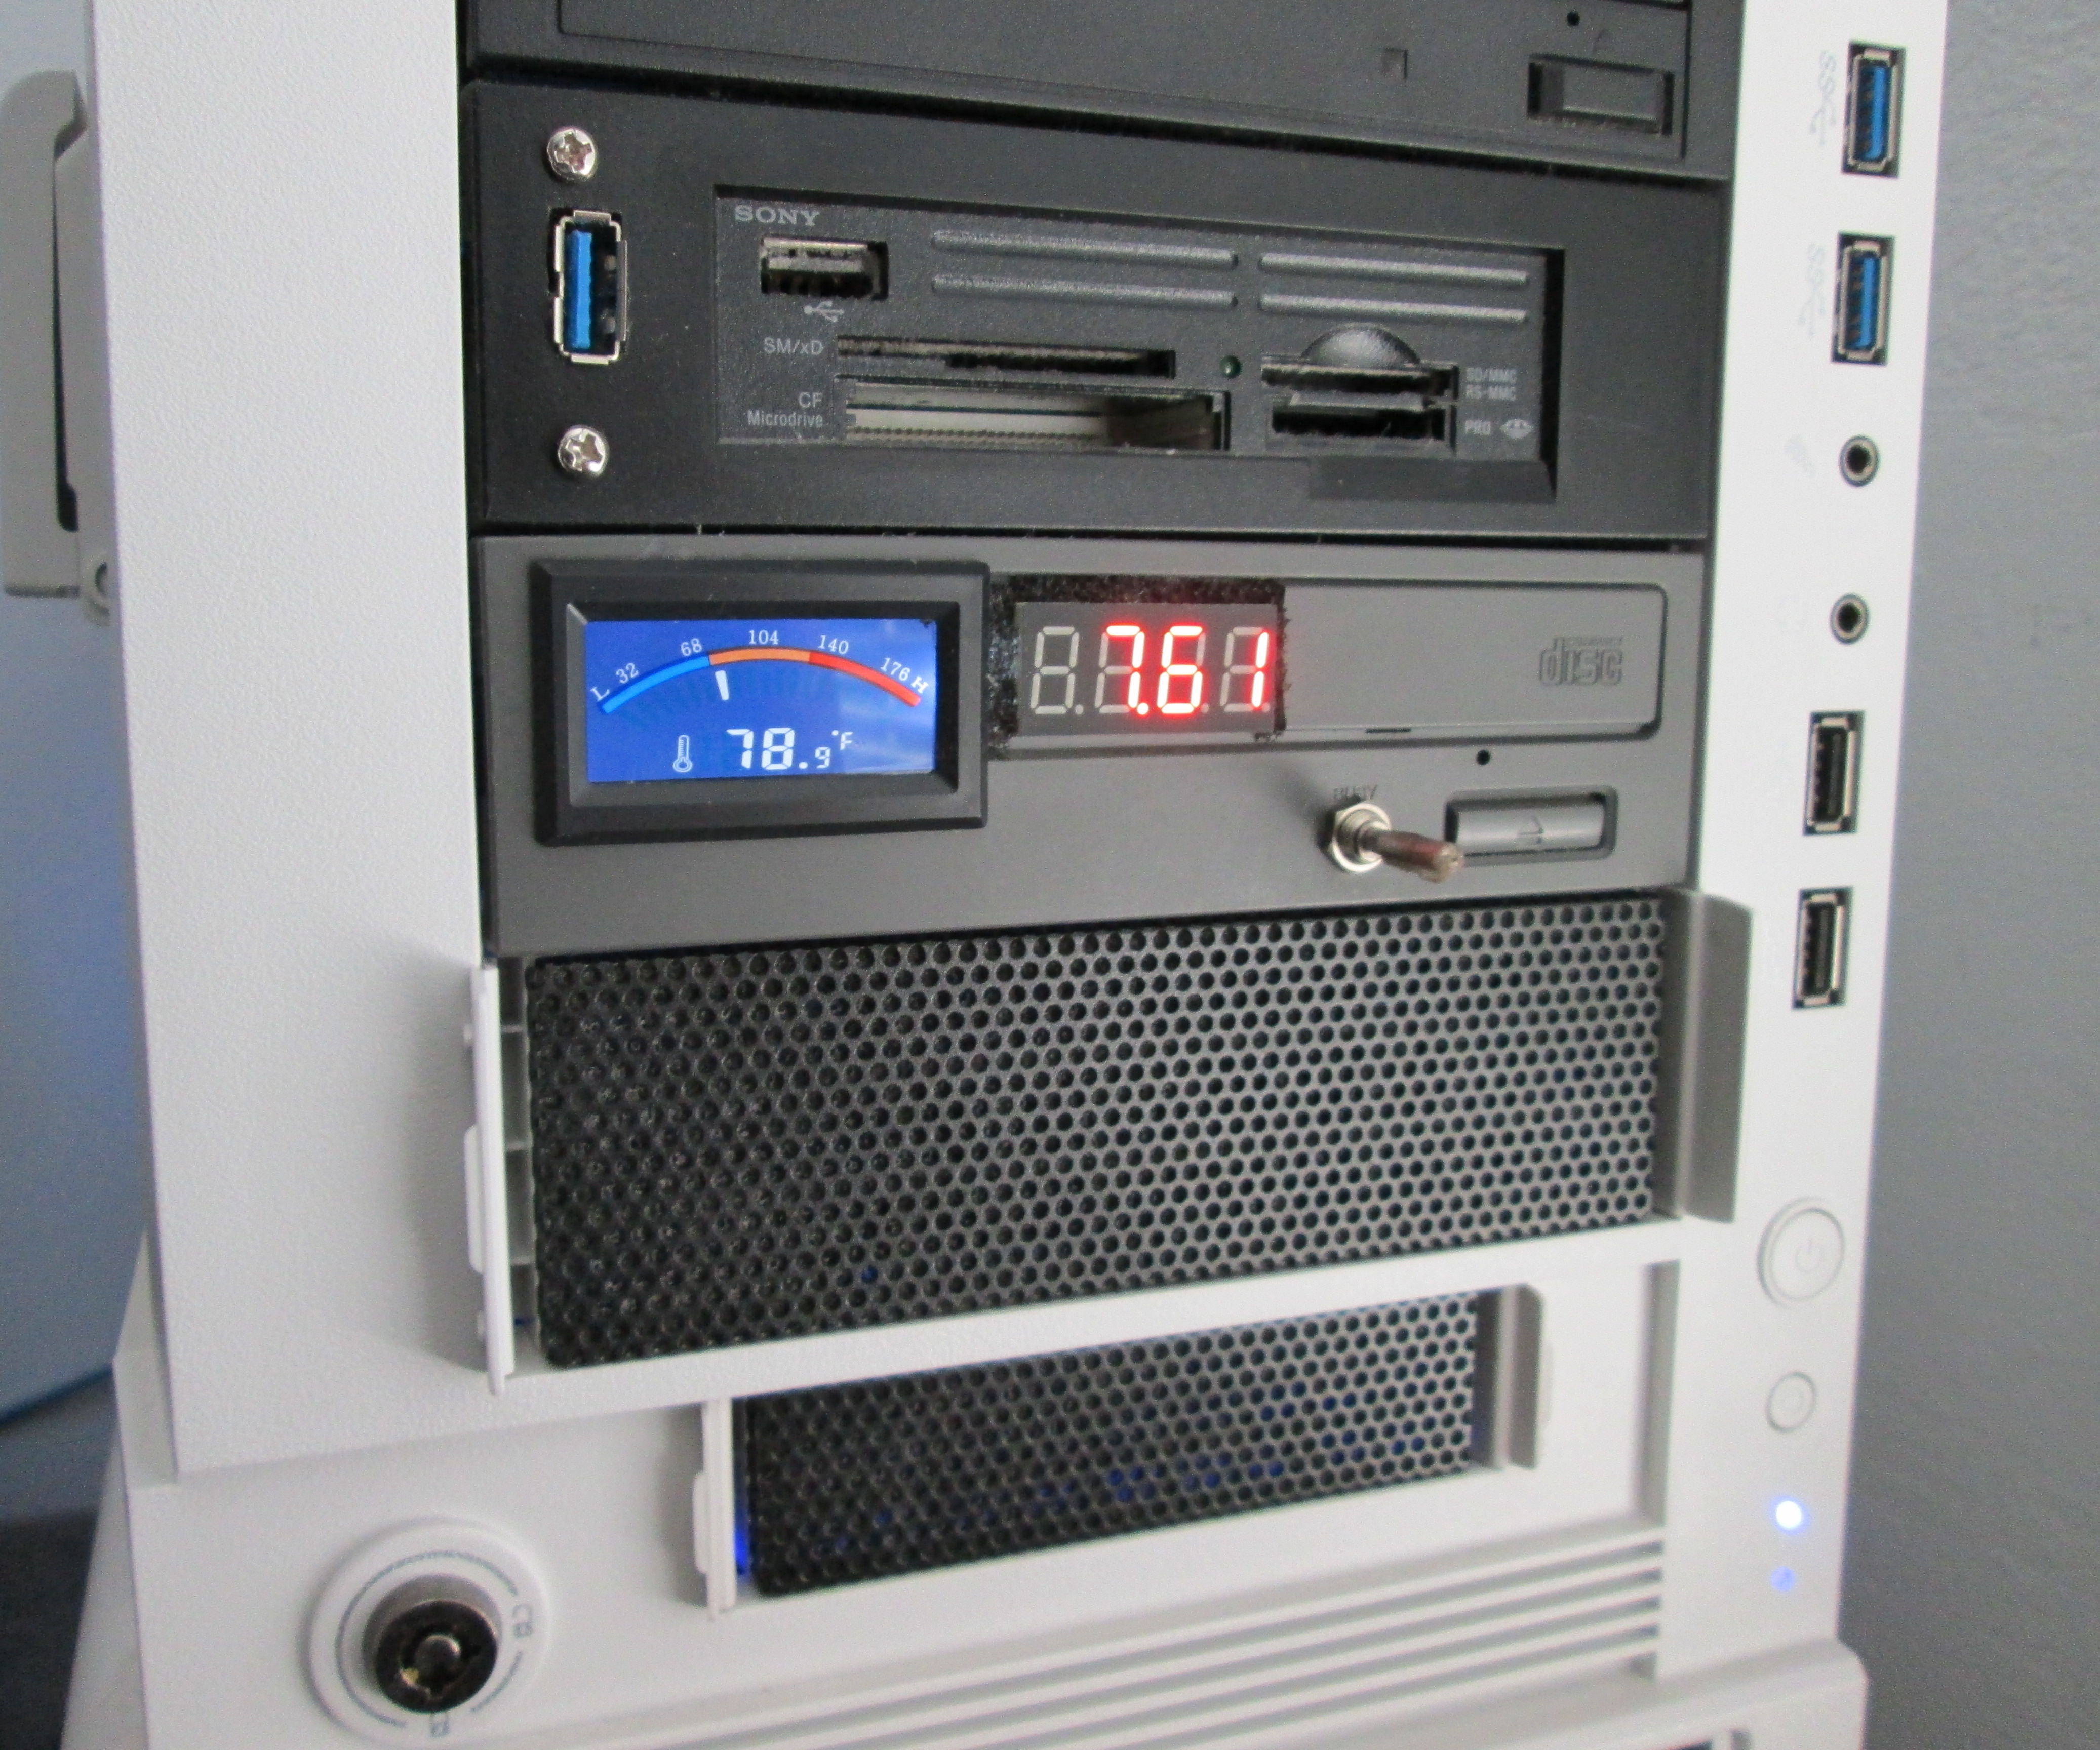 Fan Controller with Voltage and Temperature Readout